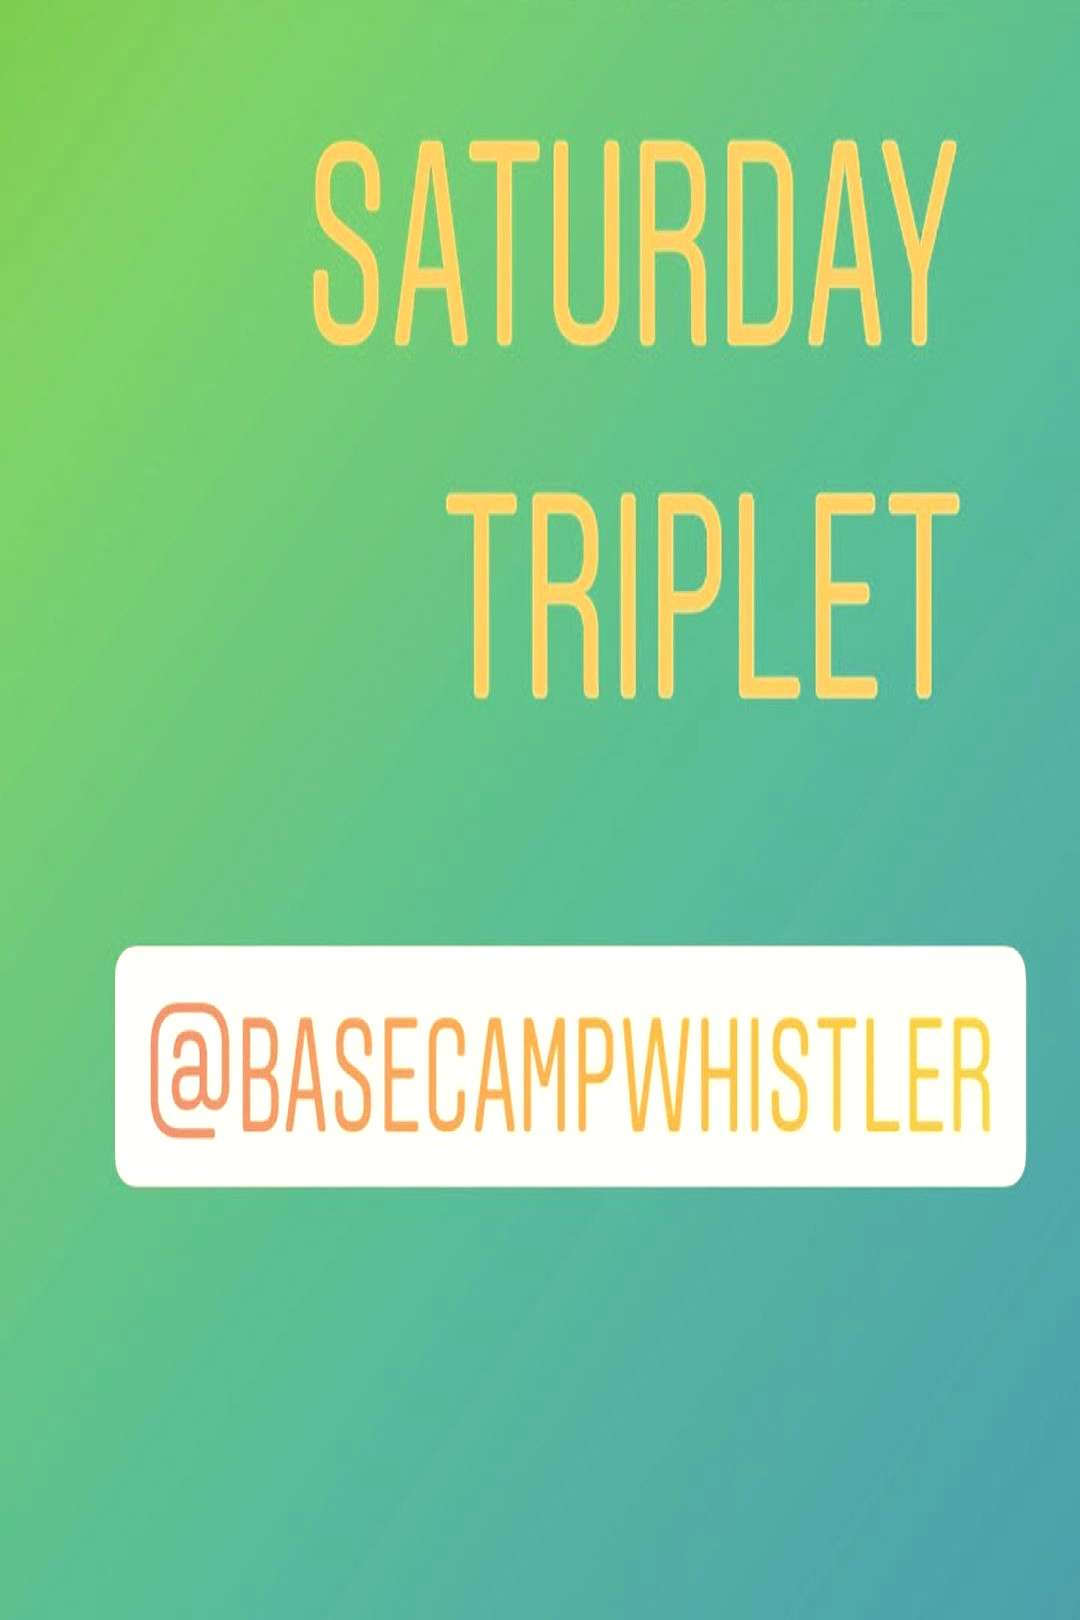 Basecamp Fitness on May 30 2020 text that says SATURDAY TRIPLET